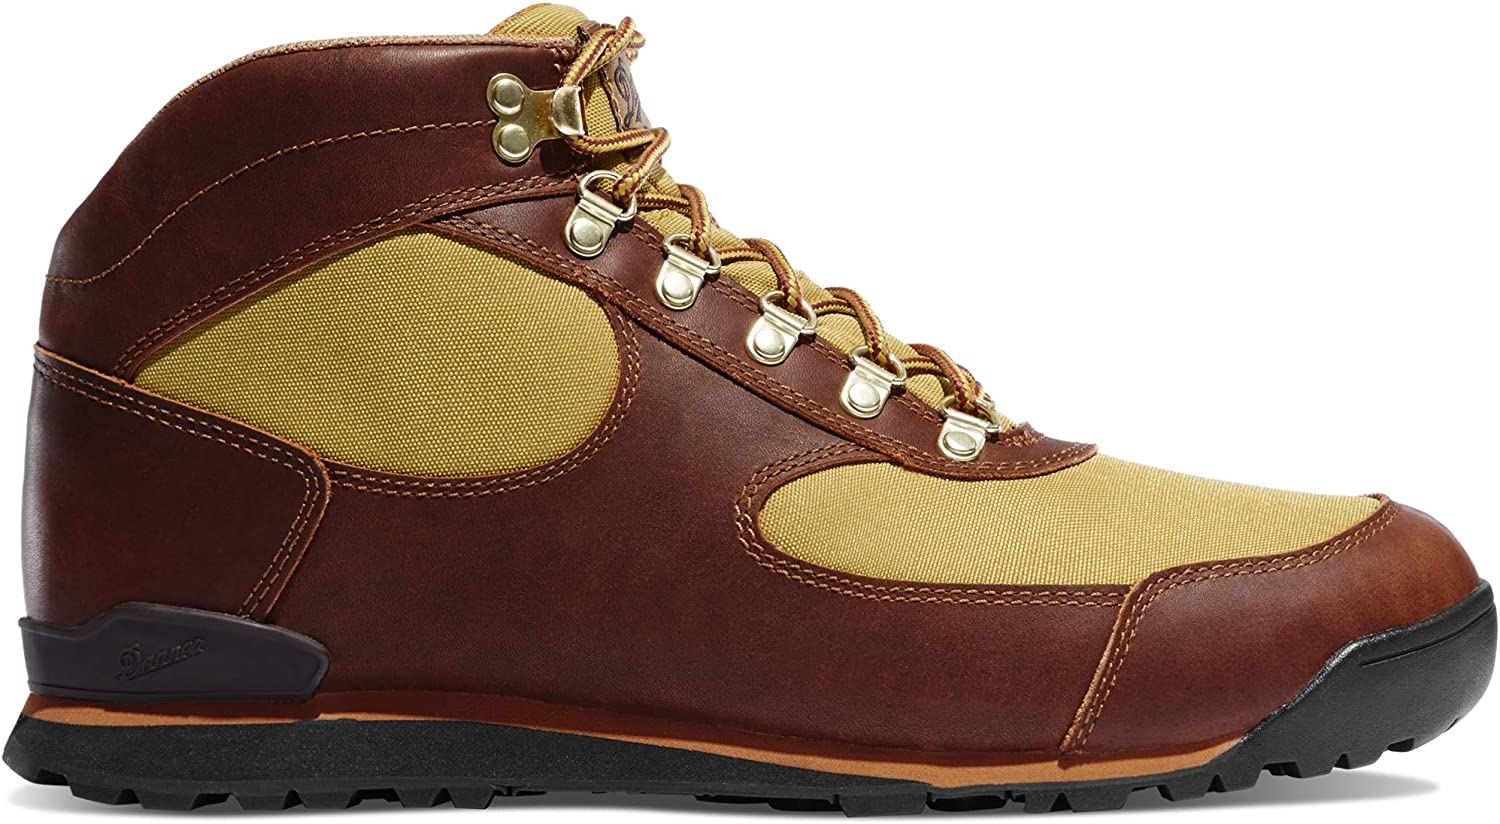 Danner Men's Jag 4.5 Waterproof Lifestyle Boot